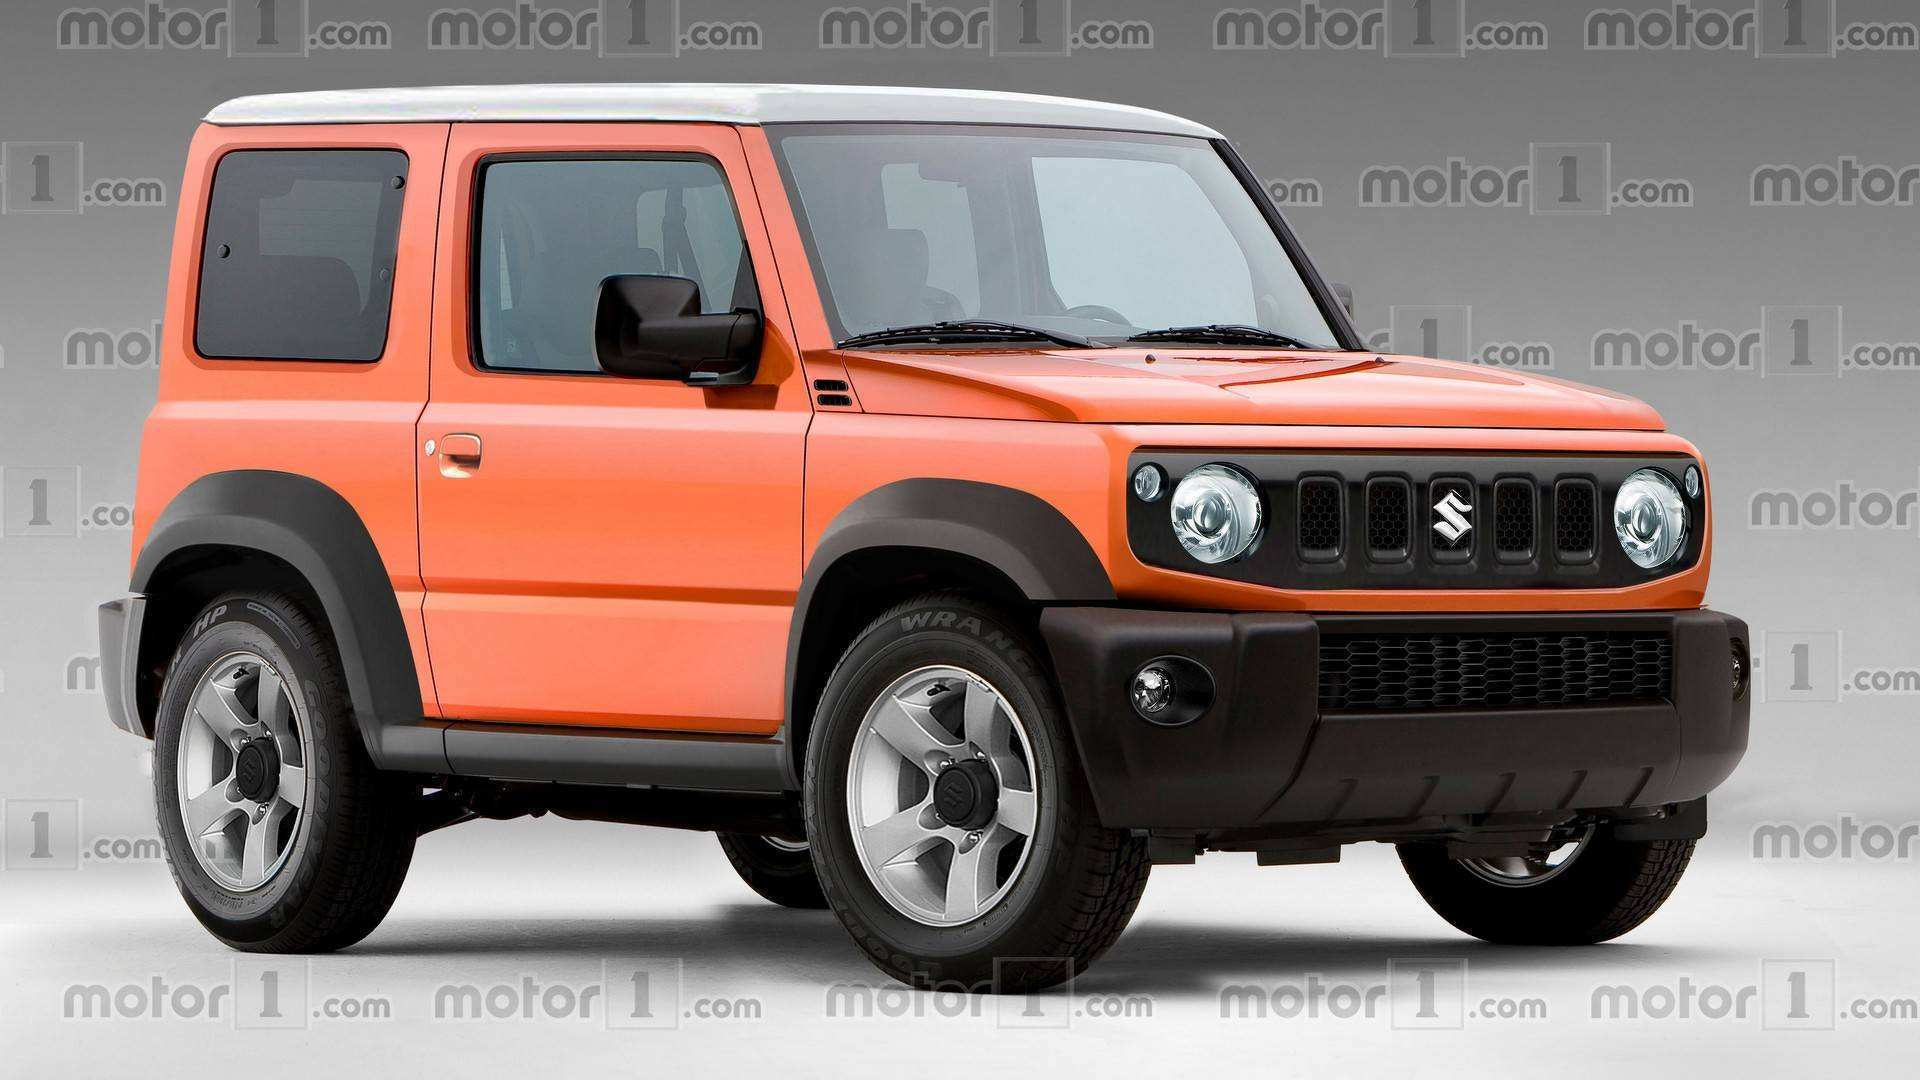 43 New Suzuki Jimny 2020 Model Engine by Suzuki Jimny 2020 Model